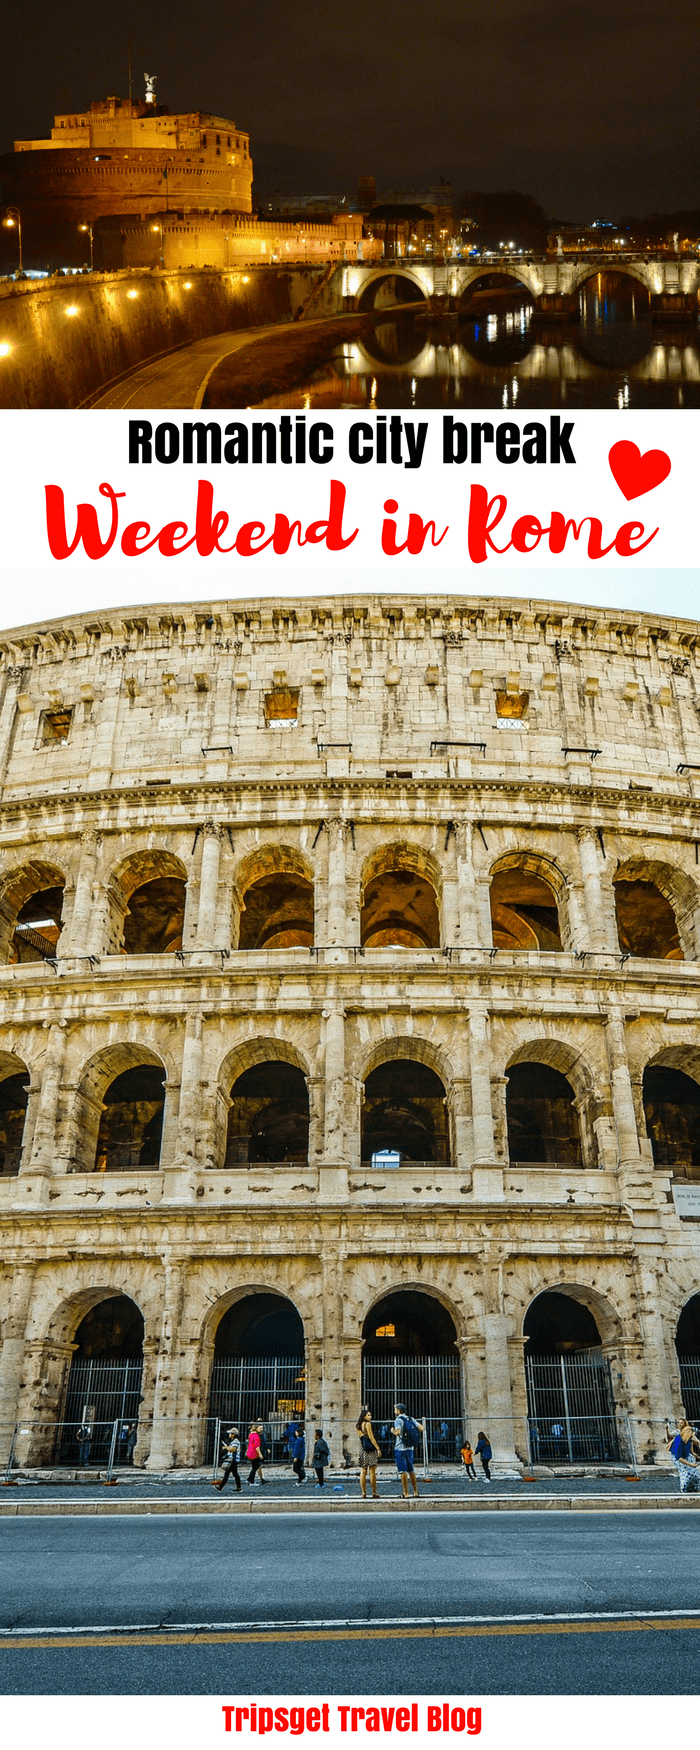 Rome weekend break: ideas for a romantic getaway: couples getaway ideas, 3 days in Rome, Italy. Best weekend trips for couples.